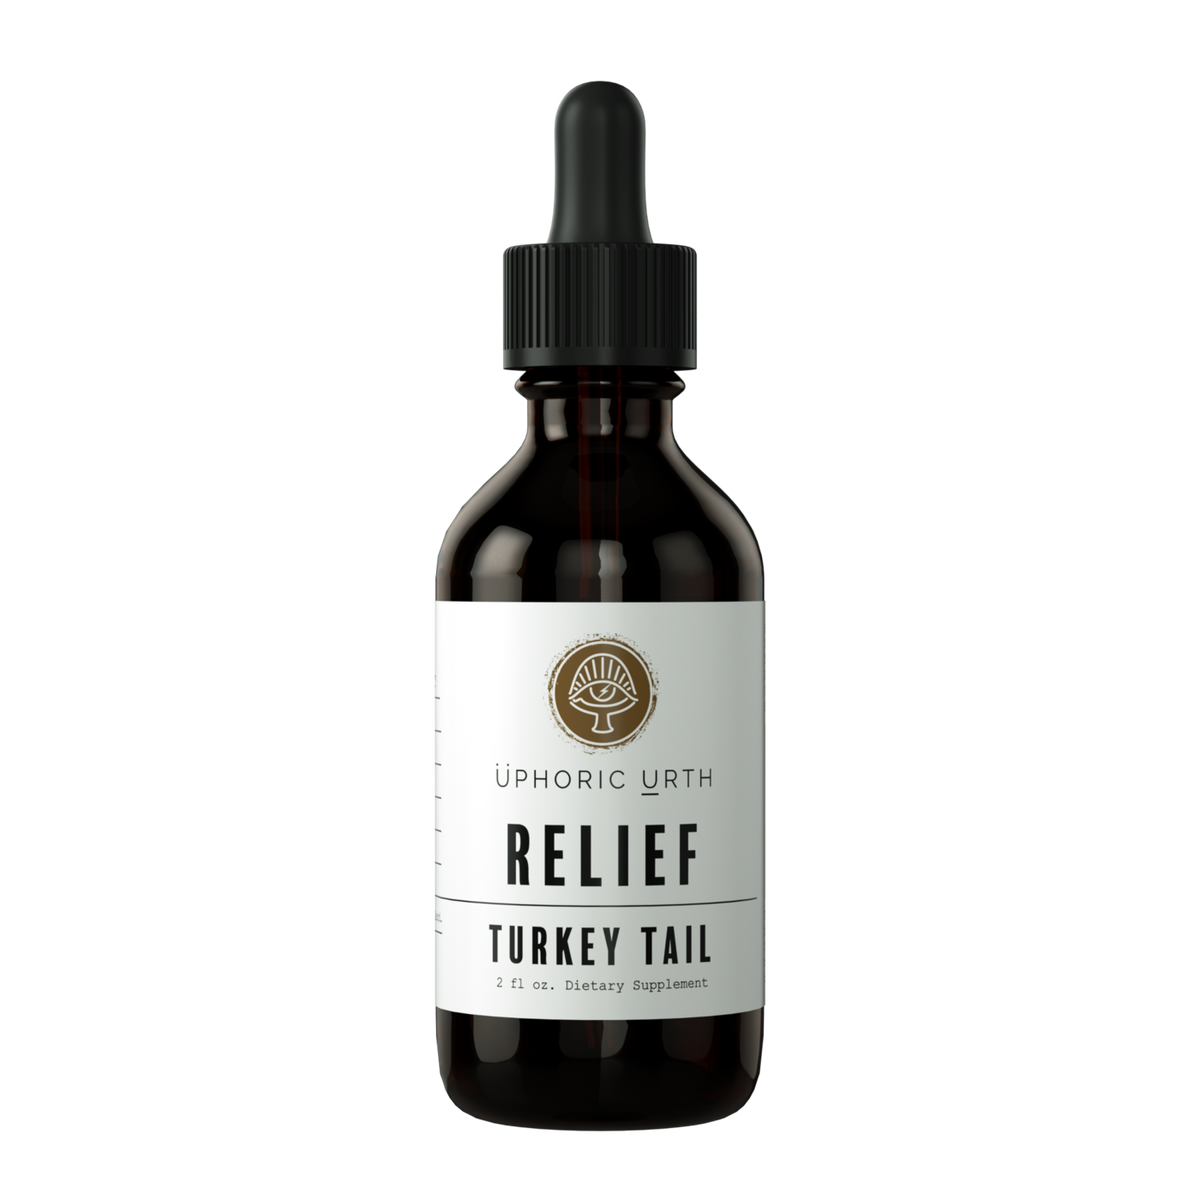 uphoric urth relief turkey tail double extracted tincture